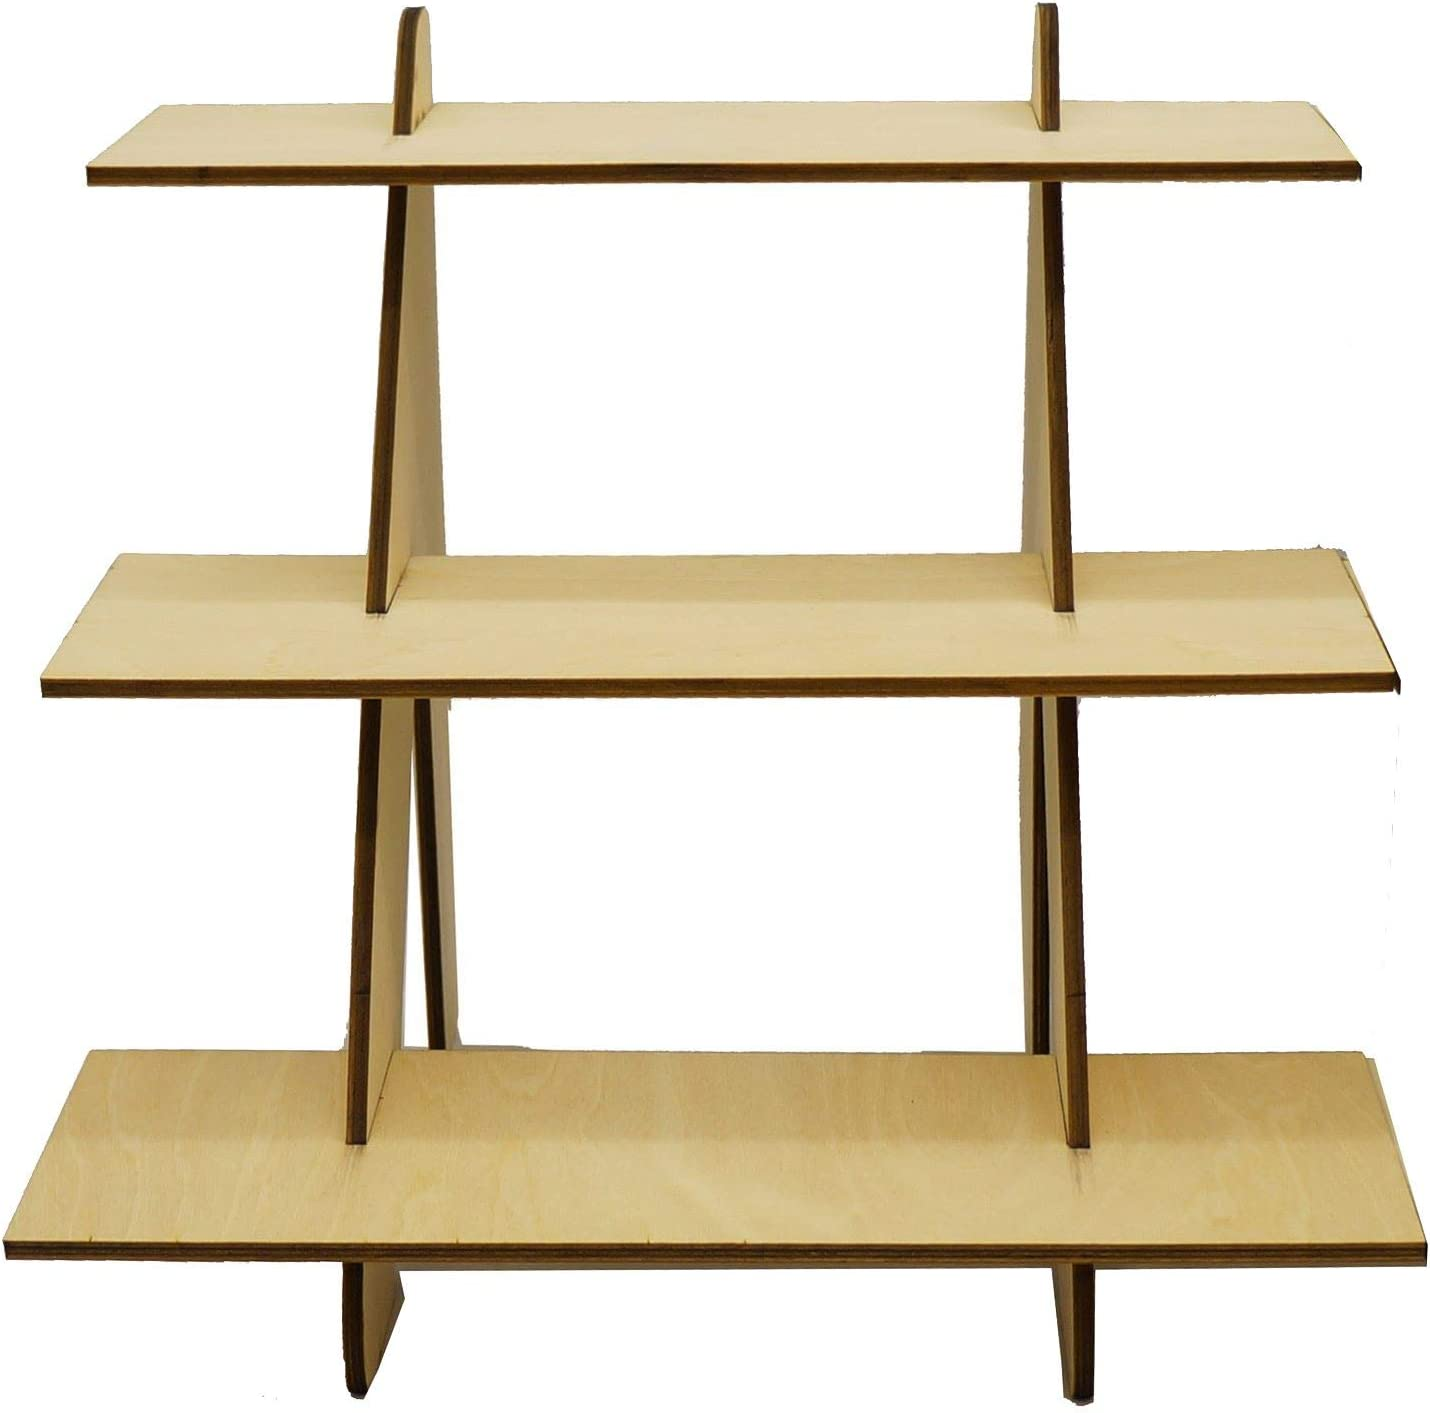 Jewelry Display Stand Craft Booth Display Tradeshow Display Portable Display Display Stand Flat-pack Display Wooden Jewelry Stand